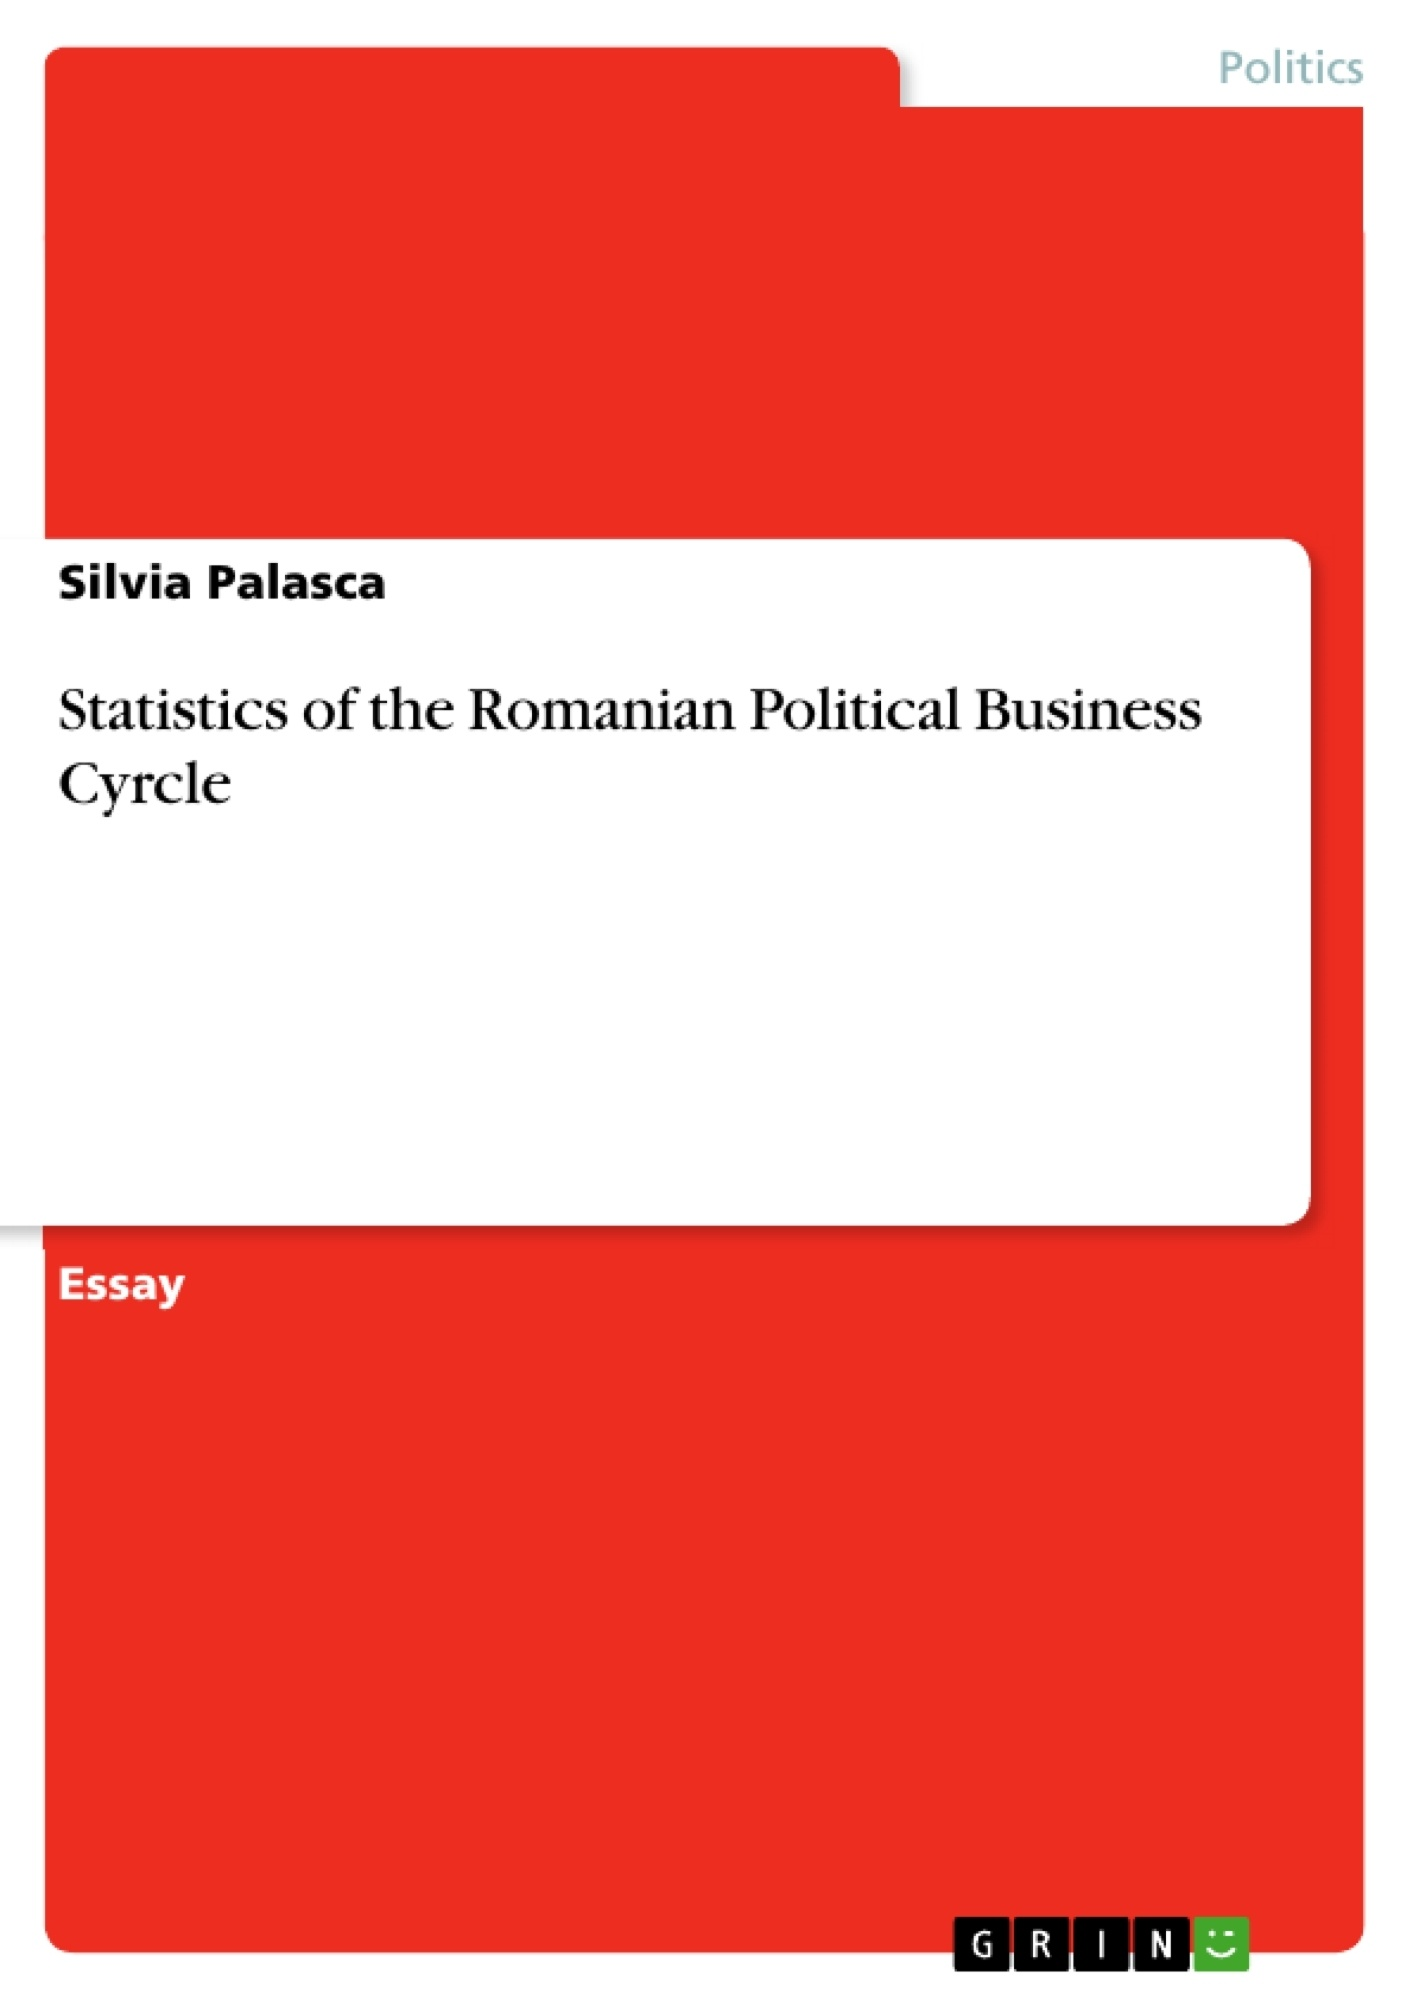 Title: Statistics of the Romanian Political Business Cyrcle